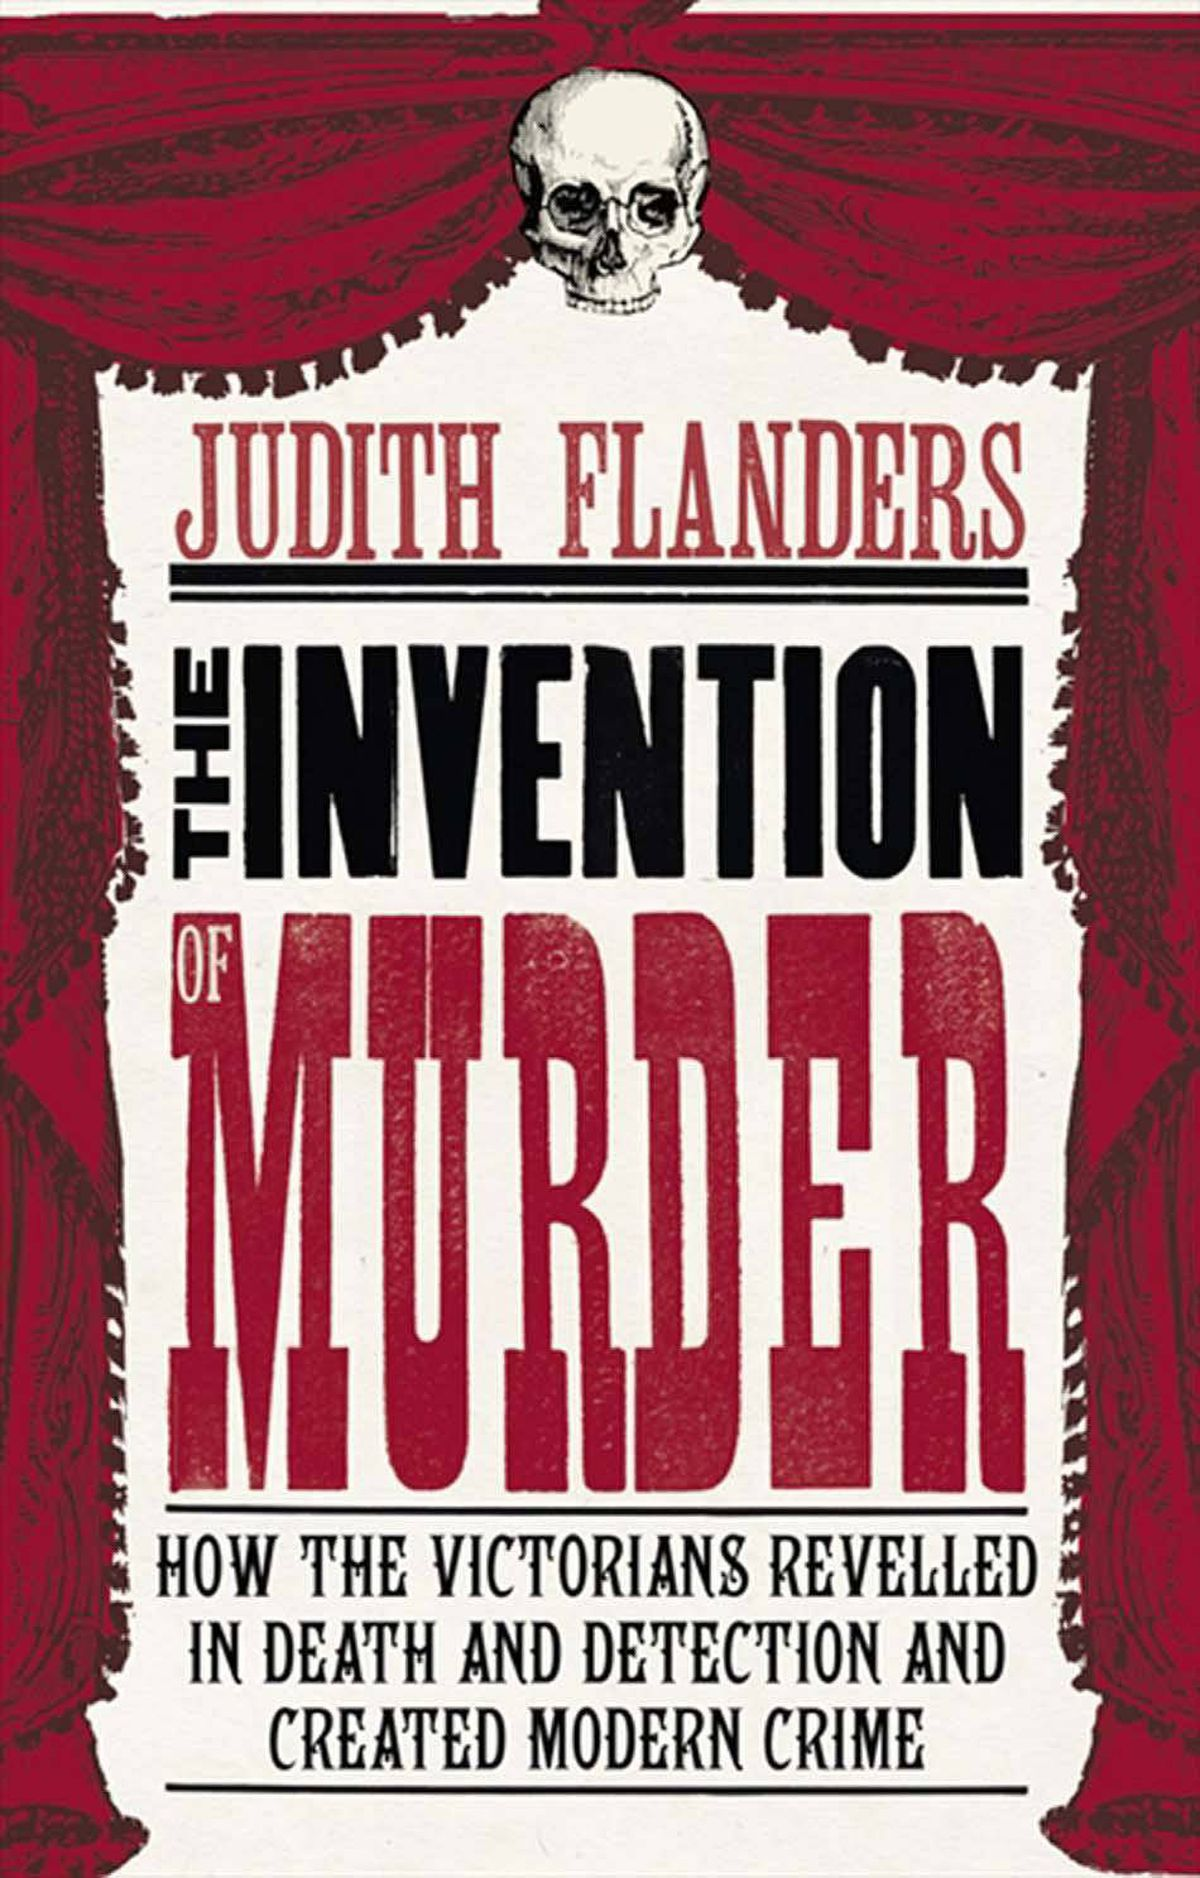 THE INVENTION OF MURDER How the Victorians Revelled in Death and Detection and Created Modern Crime By Judith Flanders (Harper) Flanders has produced a compelling study of how crime, and crime prevention, emerged as a popular obsession in 19th-century Britain, and came to dominate its literature. Murder did not begin in Victorian Britain (as TV series such as Rome and The Tudors bloodily demonstrate), but the paraphernalia of crime detection and the vehicles for sensationalism did. Mesmerizing. – Charlotte Gray